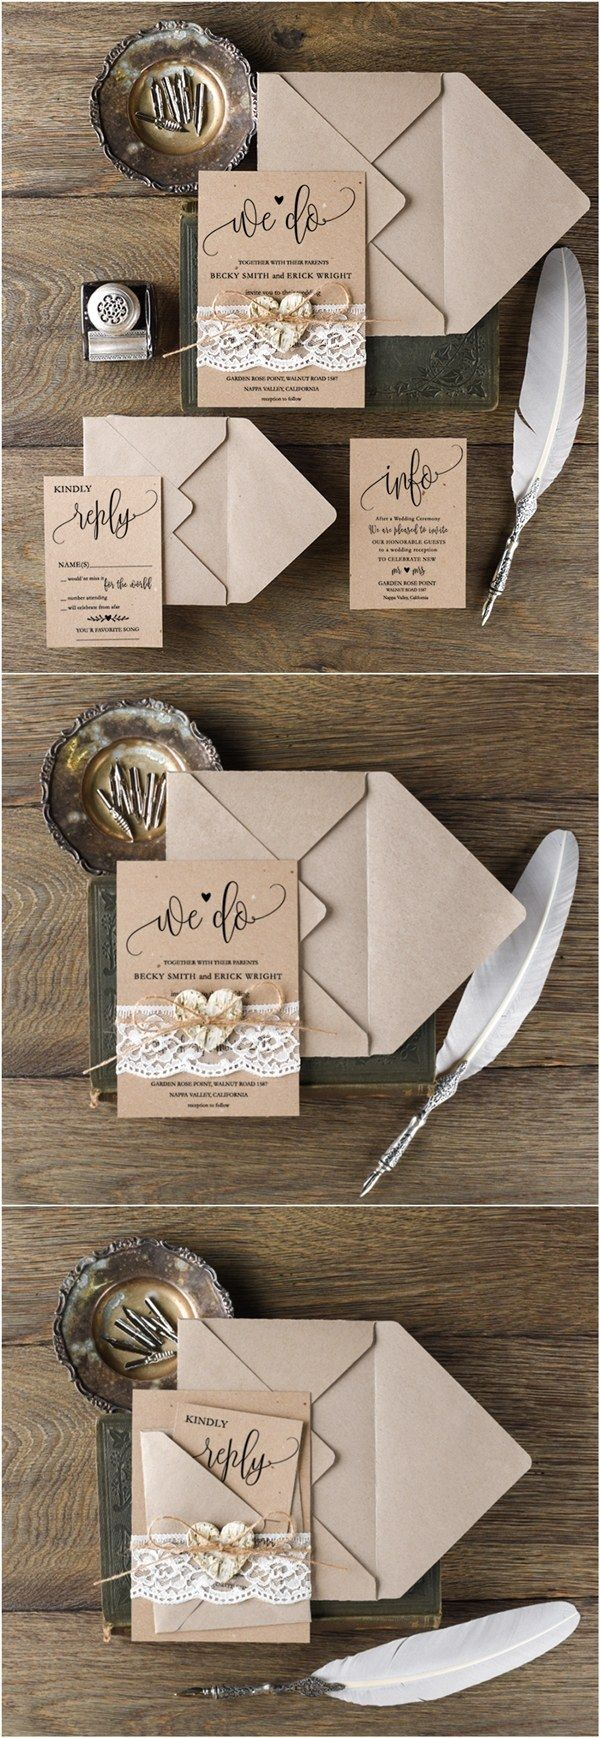 Rustic wedding invitations from @4LOVEPolkaDots